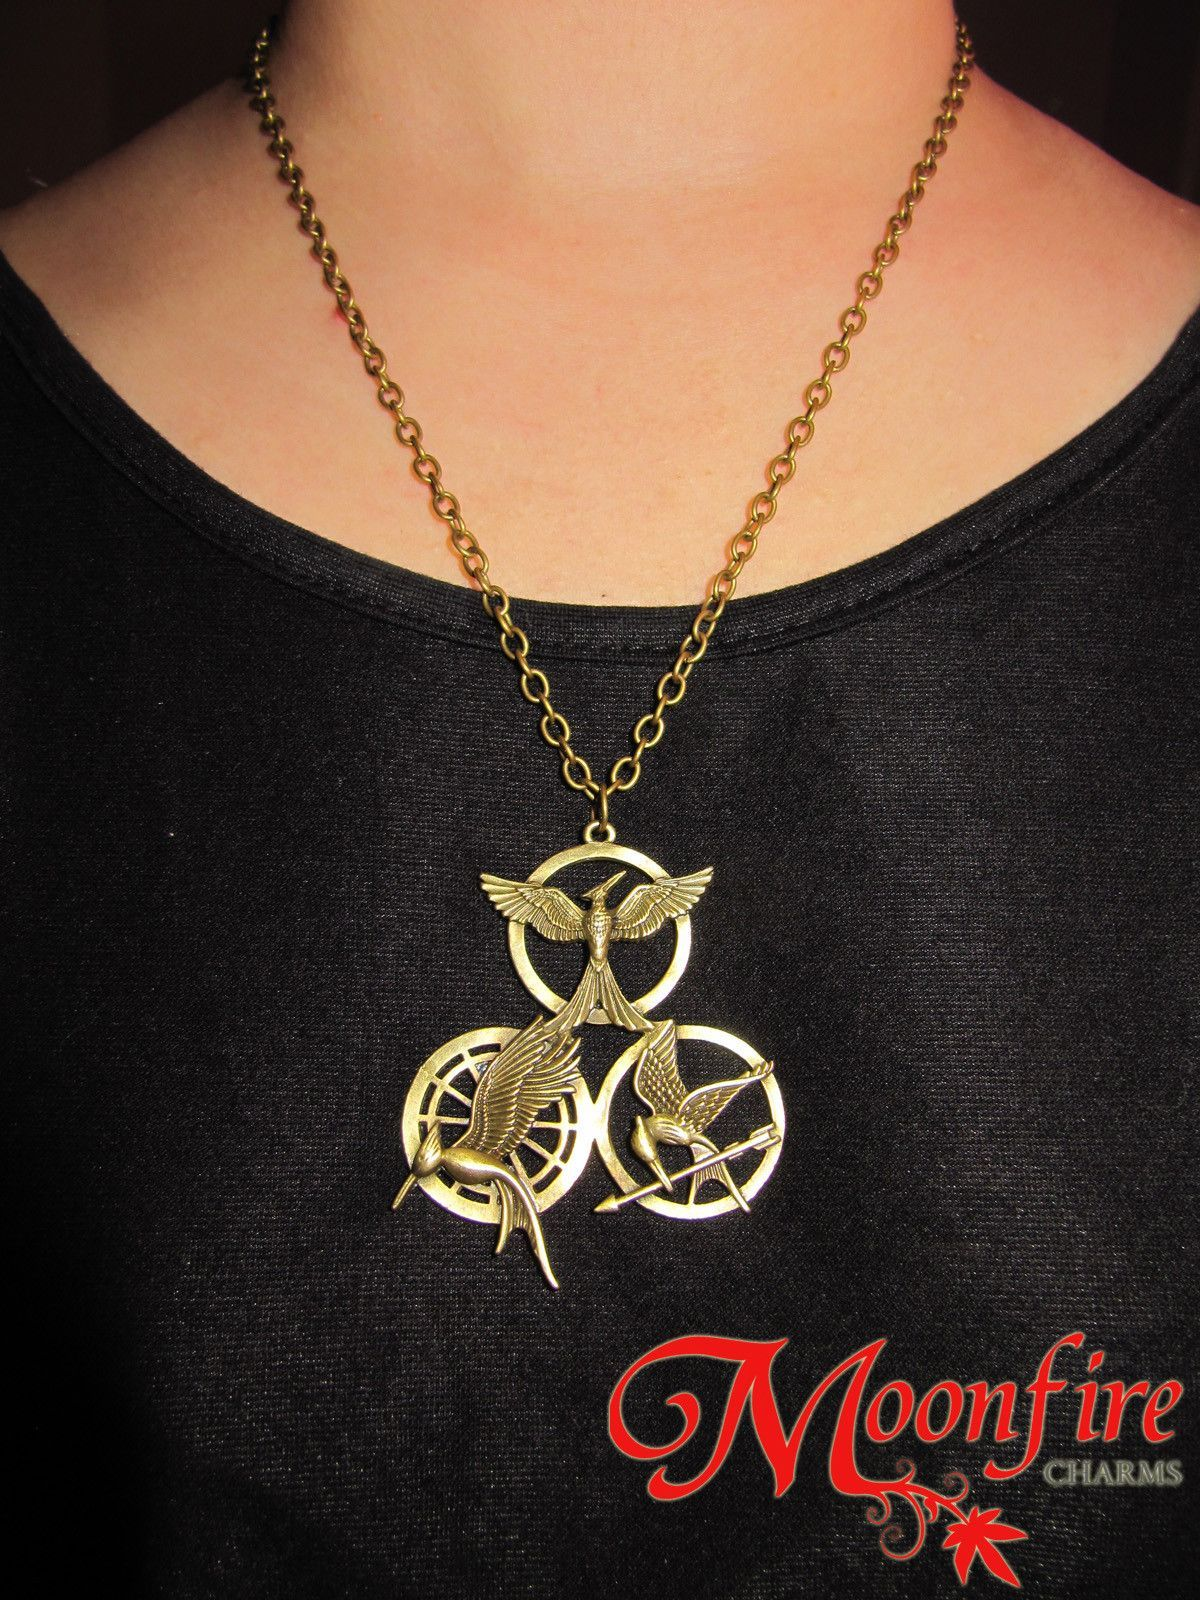 The Hunger Games Mockingjay Trio Necklace – Moonfire Charms